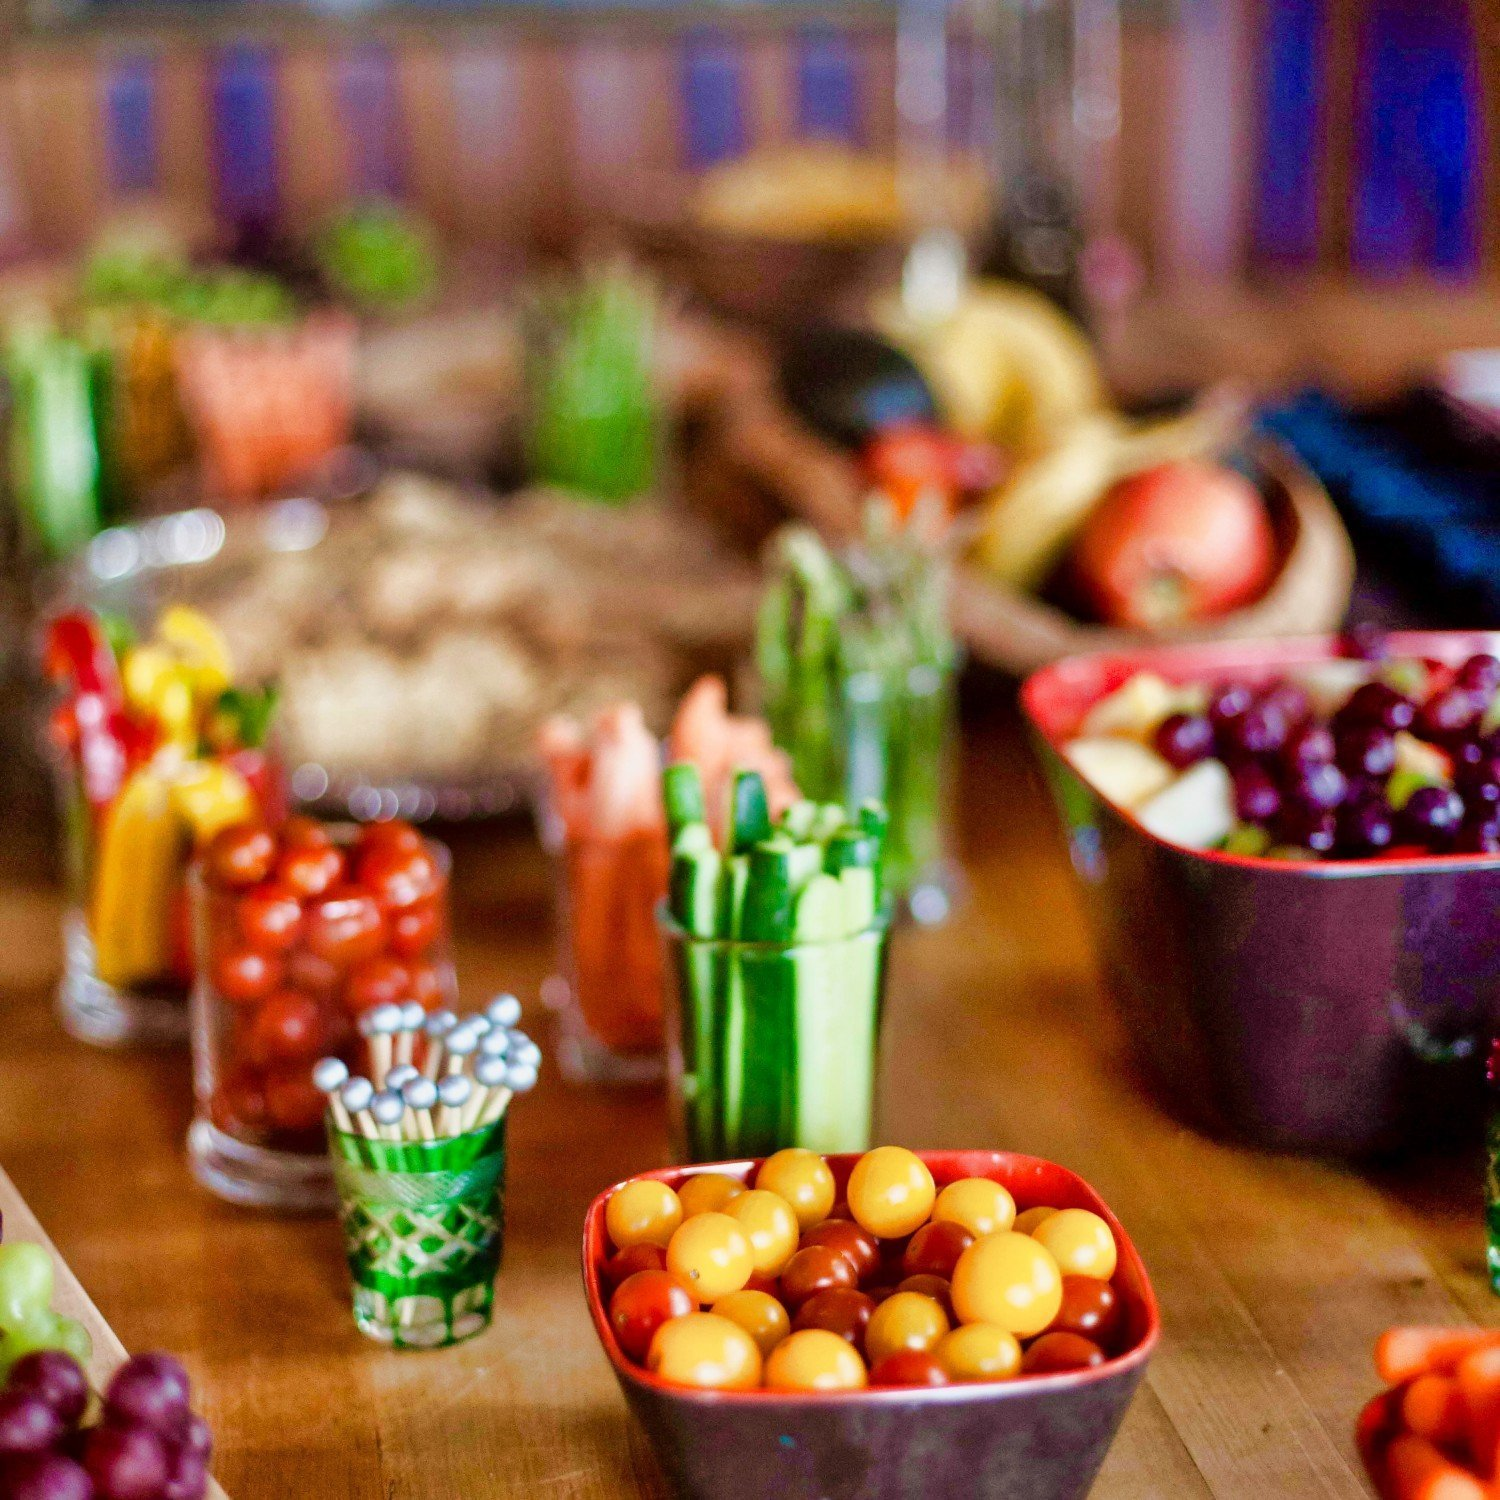 crudites and adult party snacks